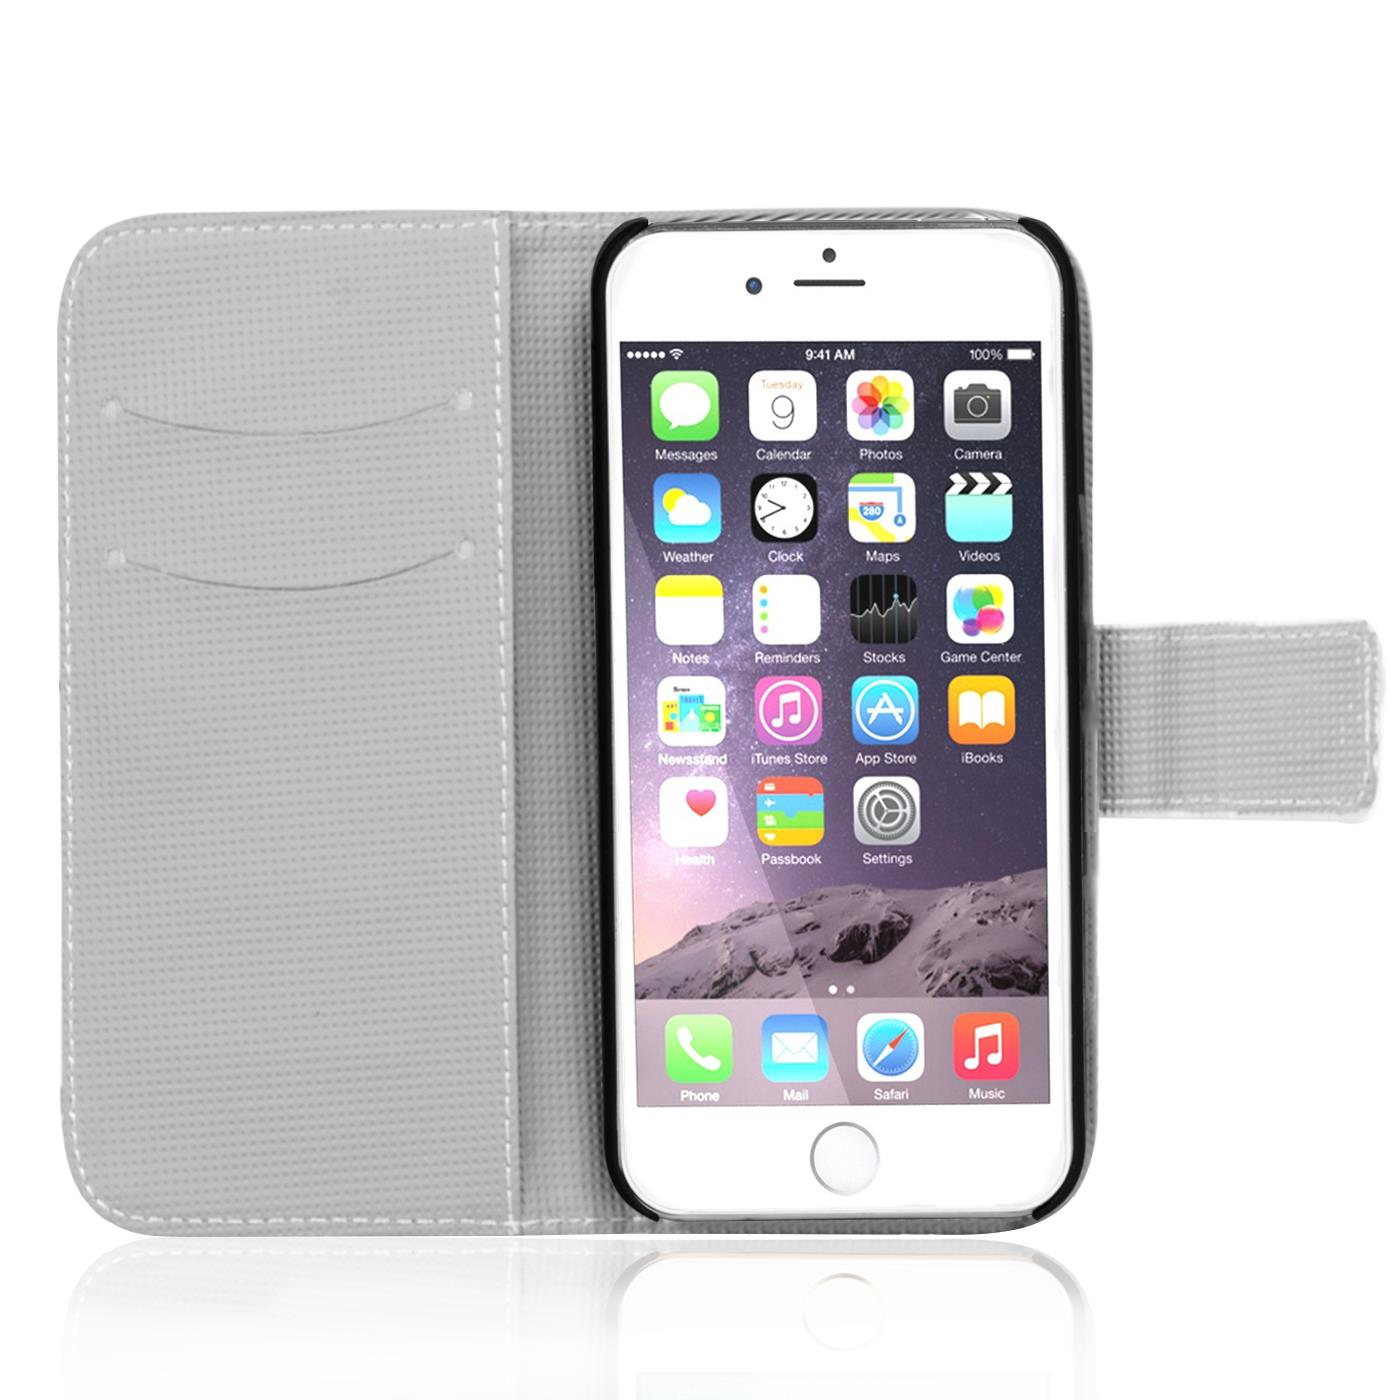 handy tasche f r apple iphone 7 h lle pu leder motiv schutzh lle case bumper 4058455400032 ebay. Black Bedroom Furniture Sets. Home Design Ideas